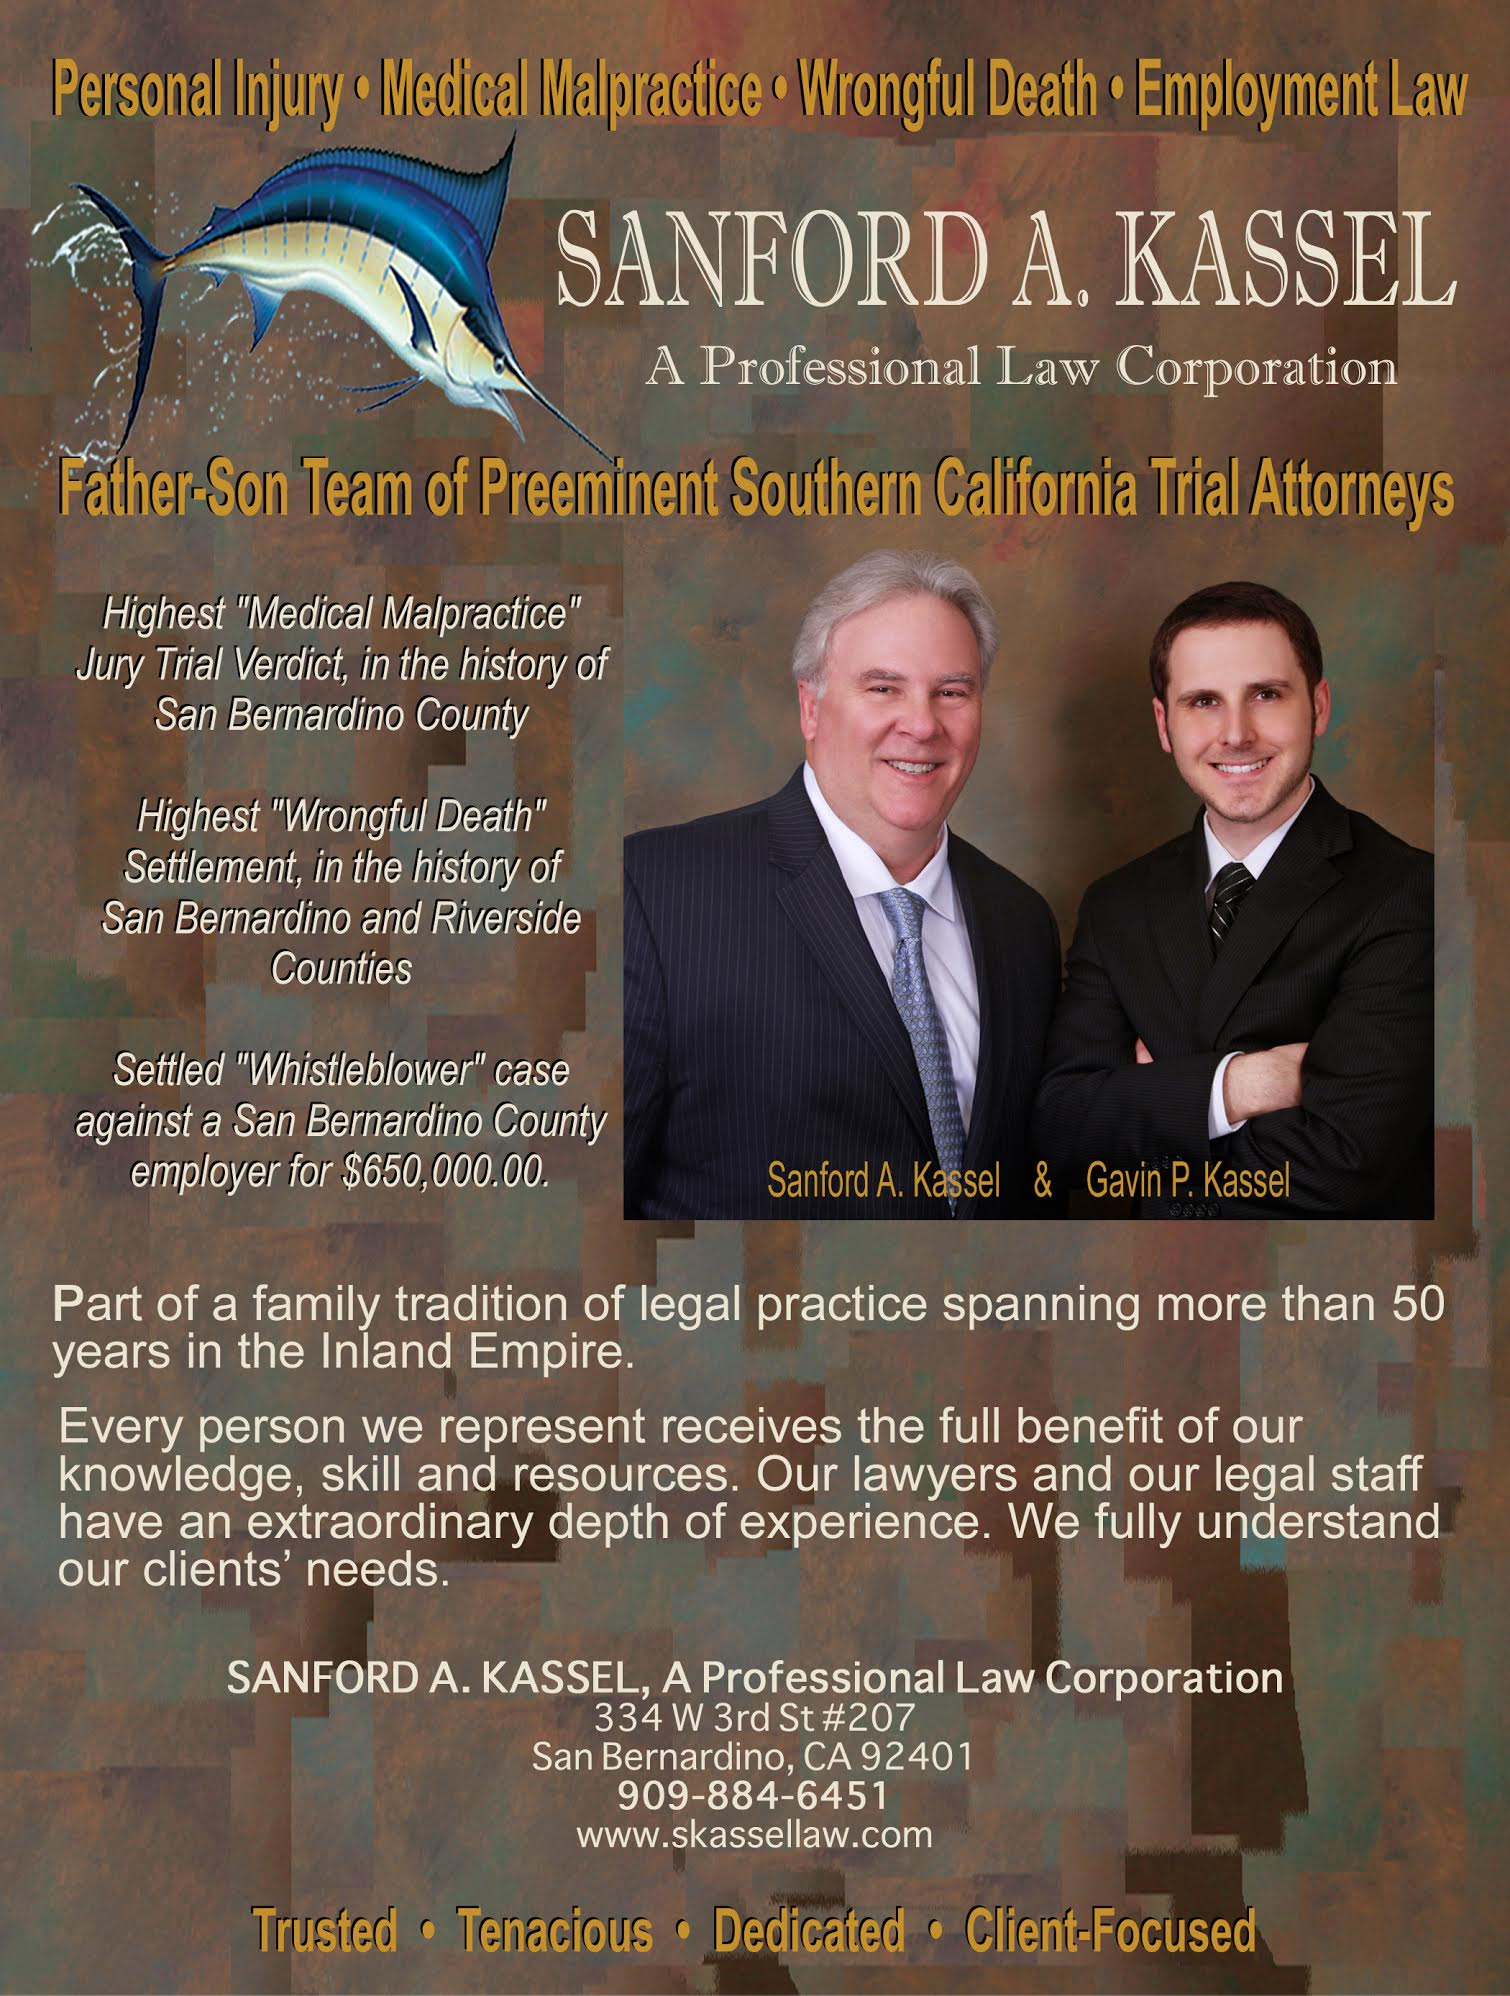 Sanford A. Kassel, A Professional Law Corporation image 3